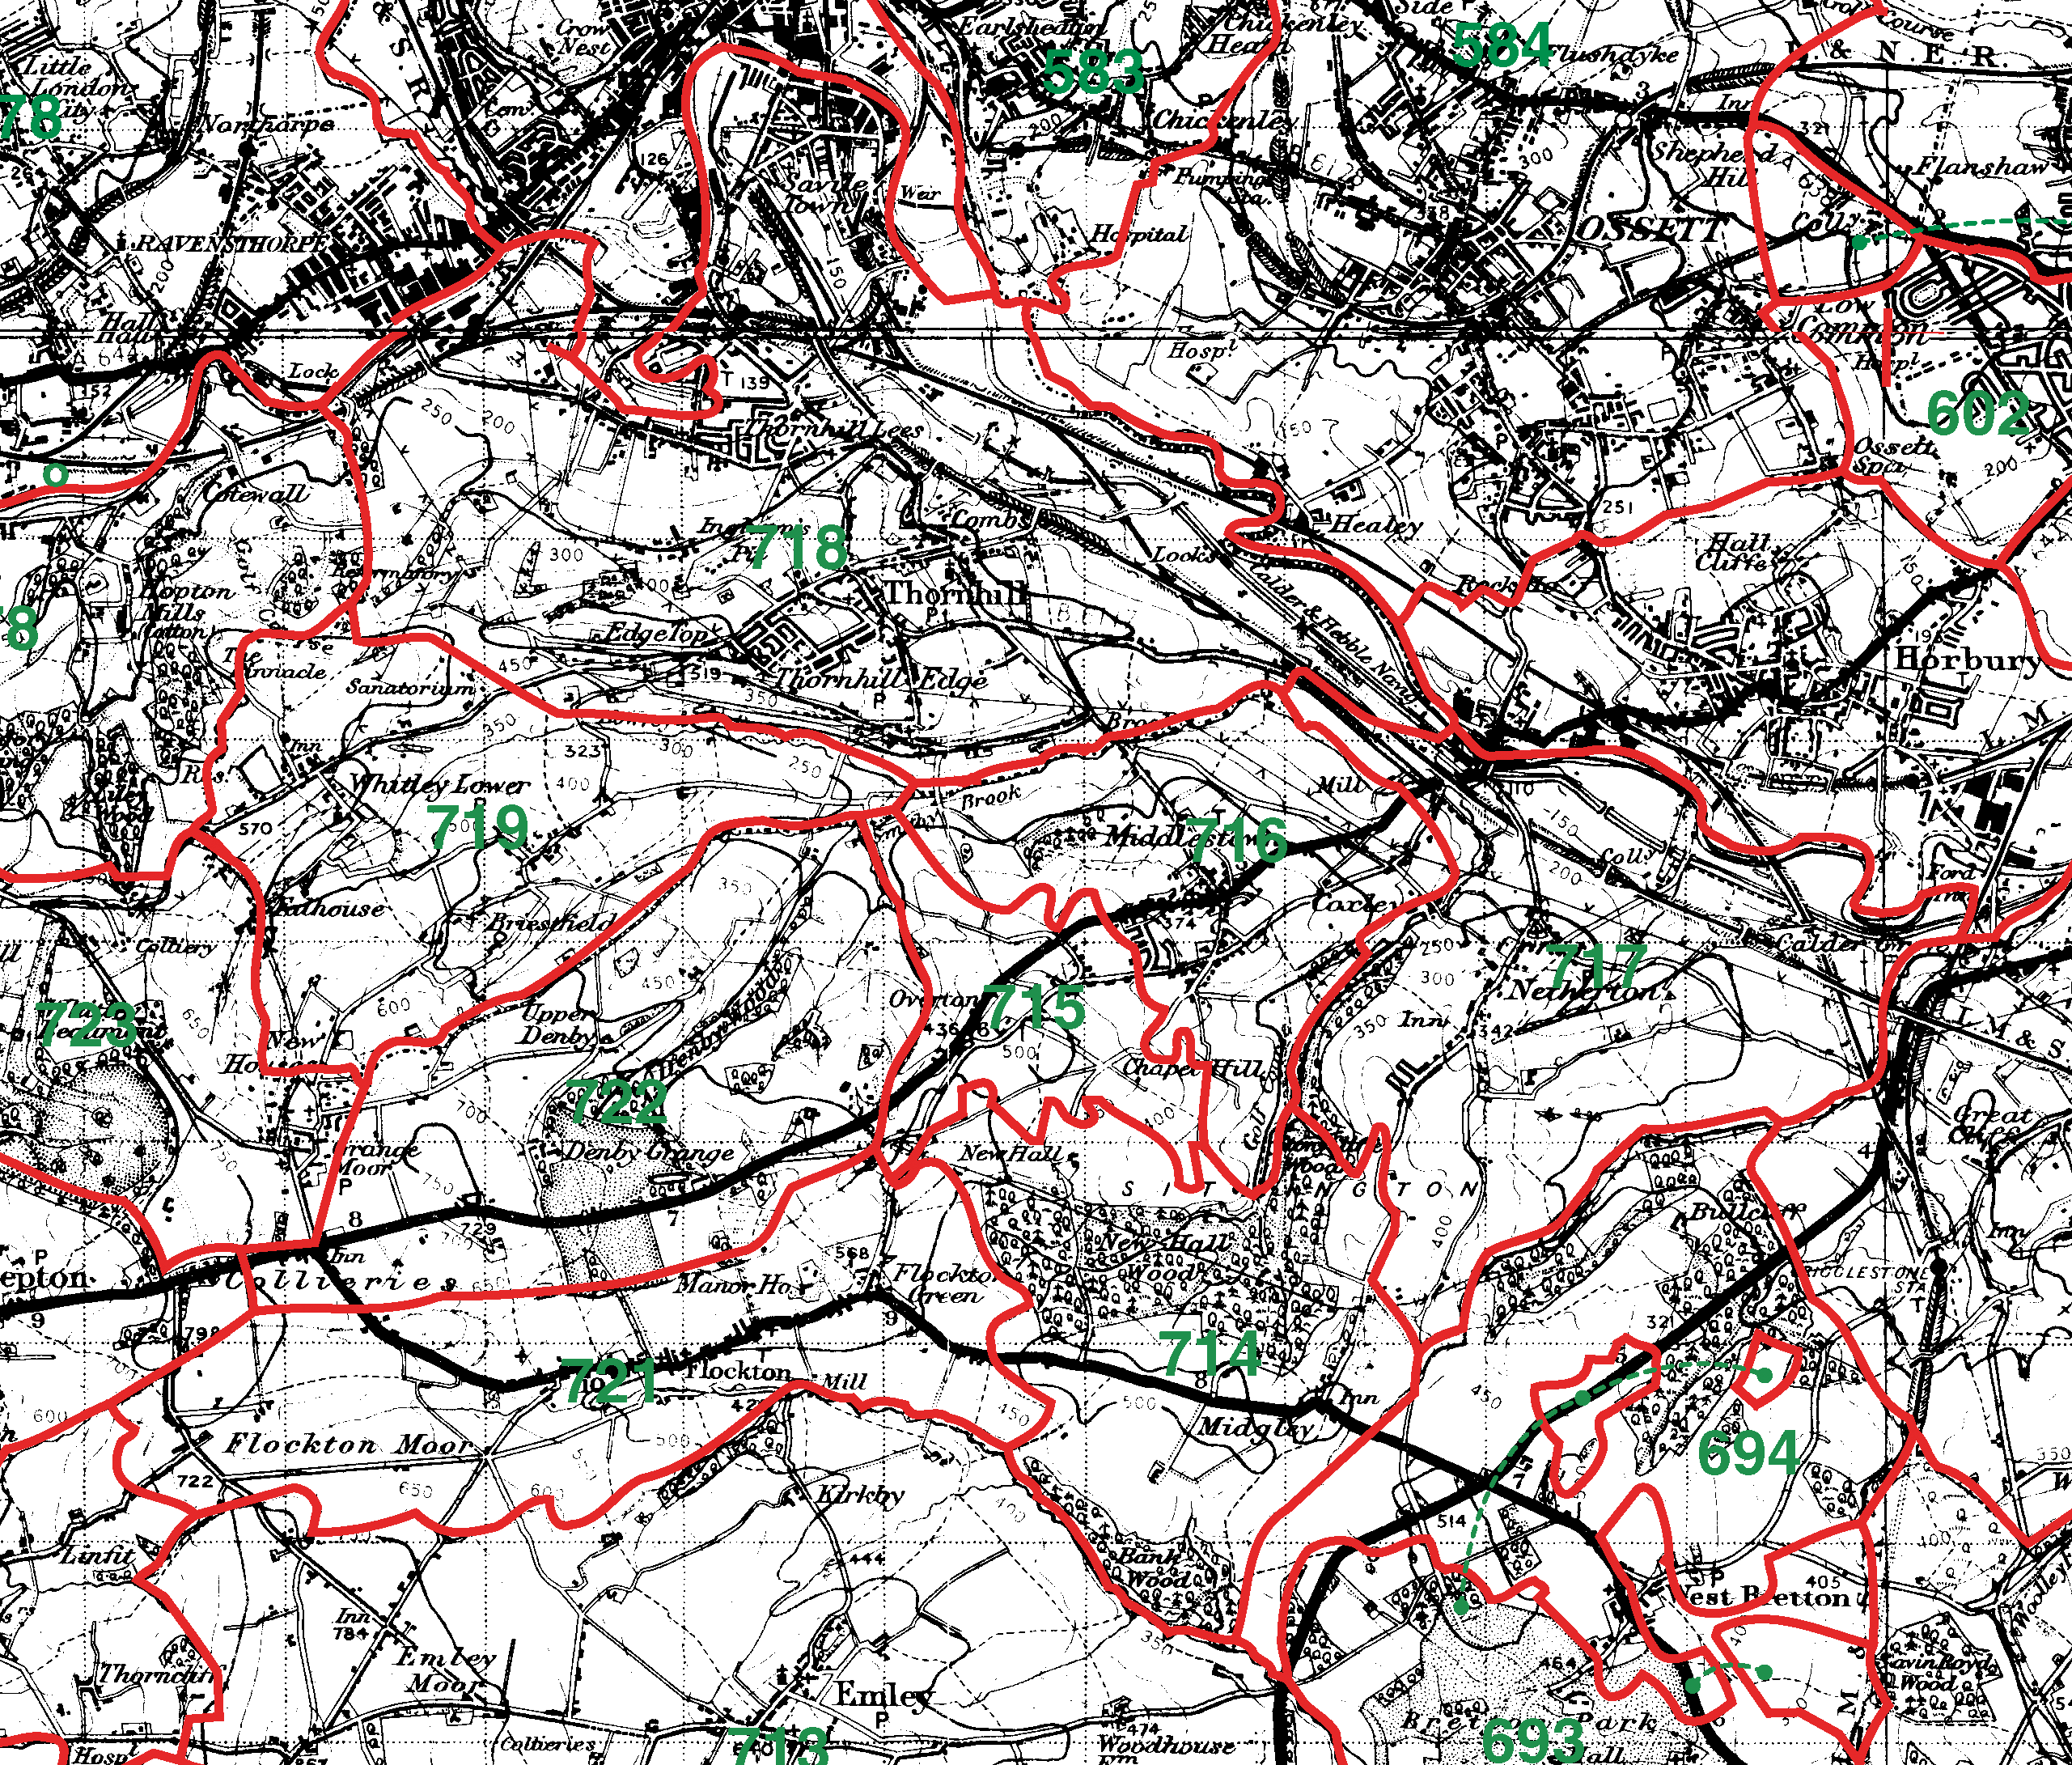 Thornhill boundaries map